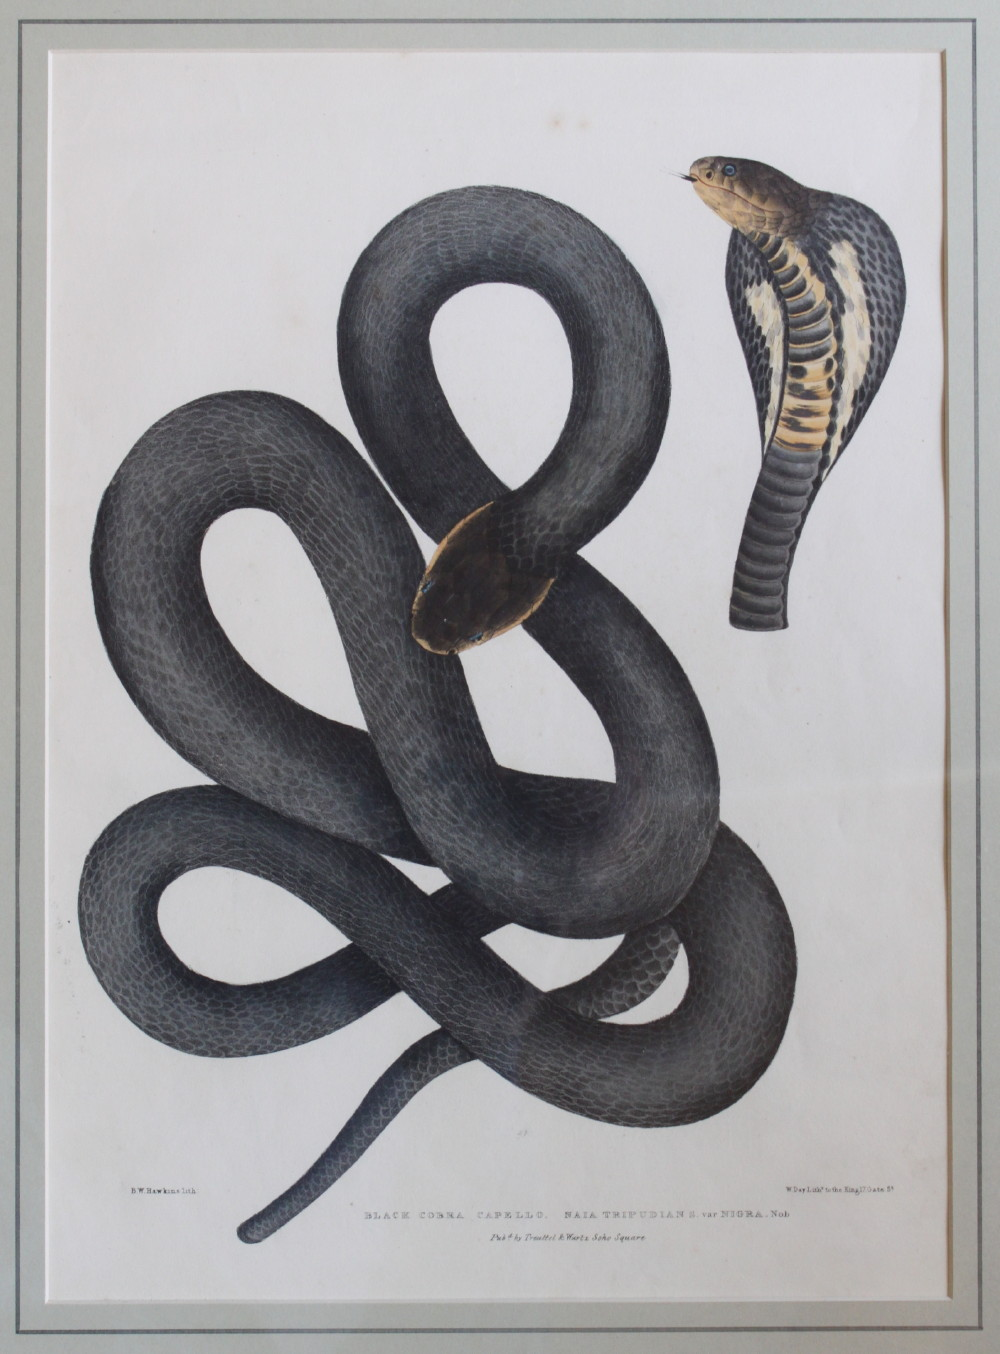 Image for Black Cobra Capello. Naia Tripudian S. var Nigra.